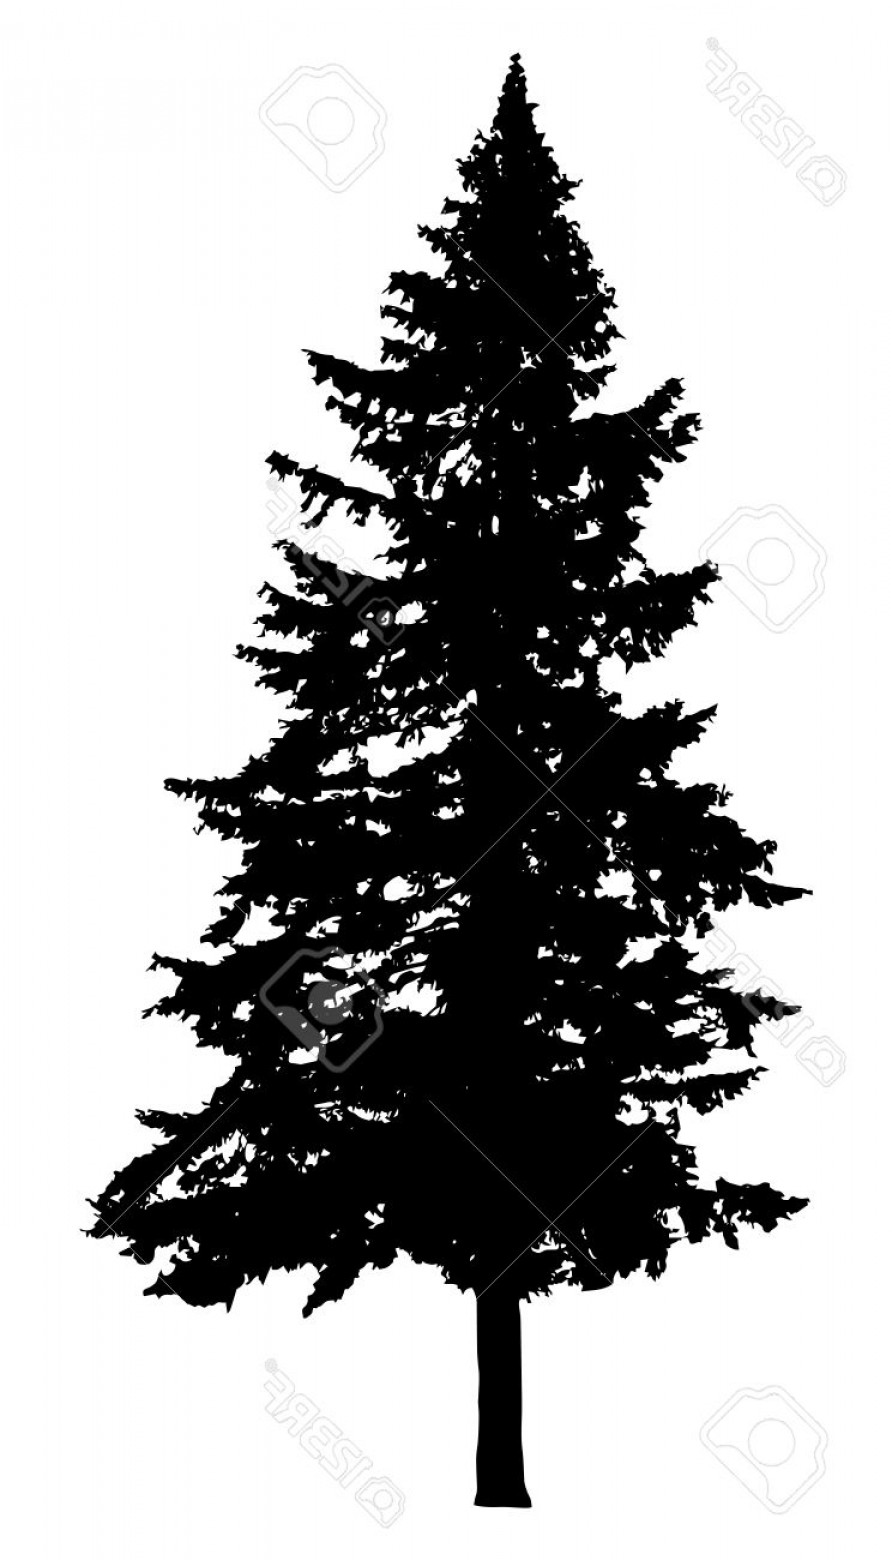 Pine Silhouette Vector: Photostock Vector Pine Tree Silhouette Isolated On White Background